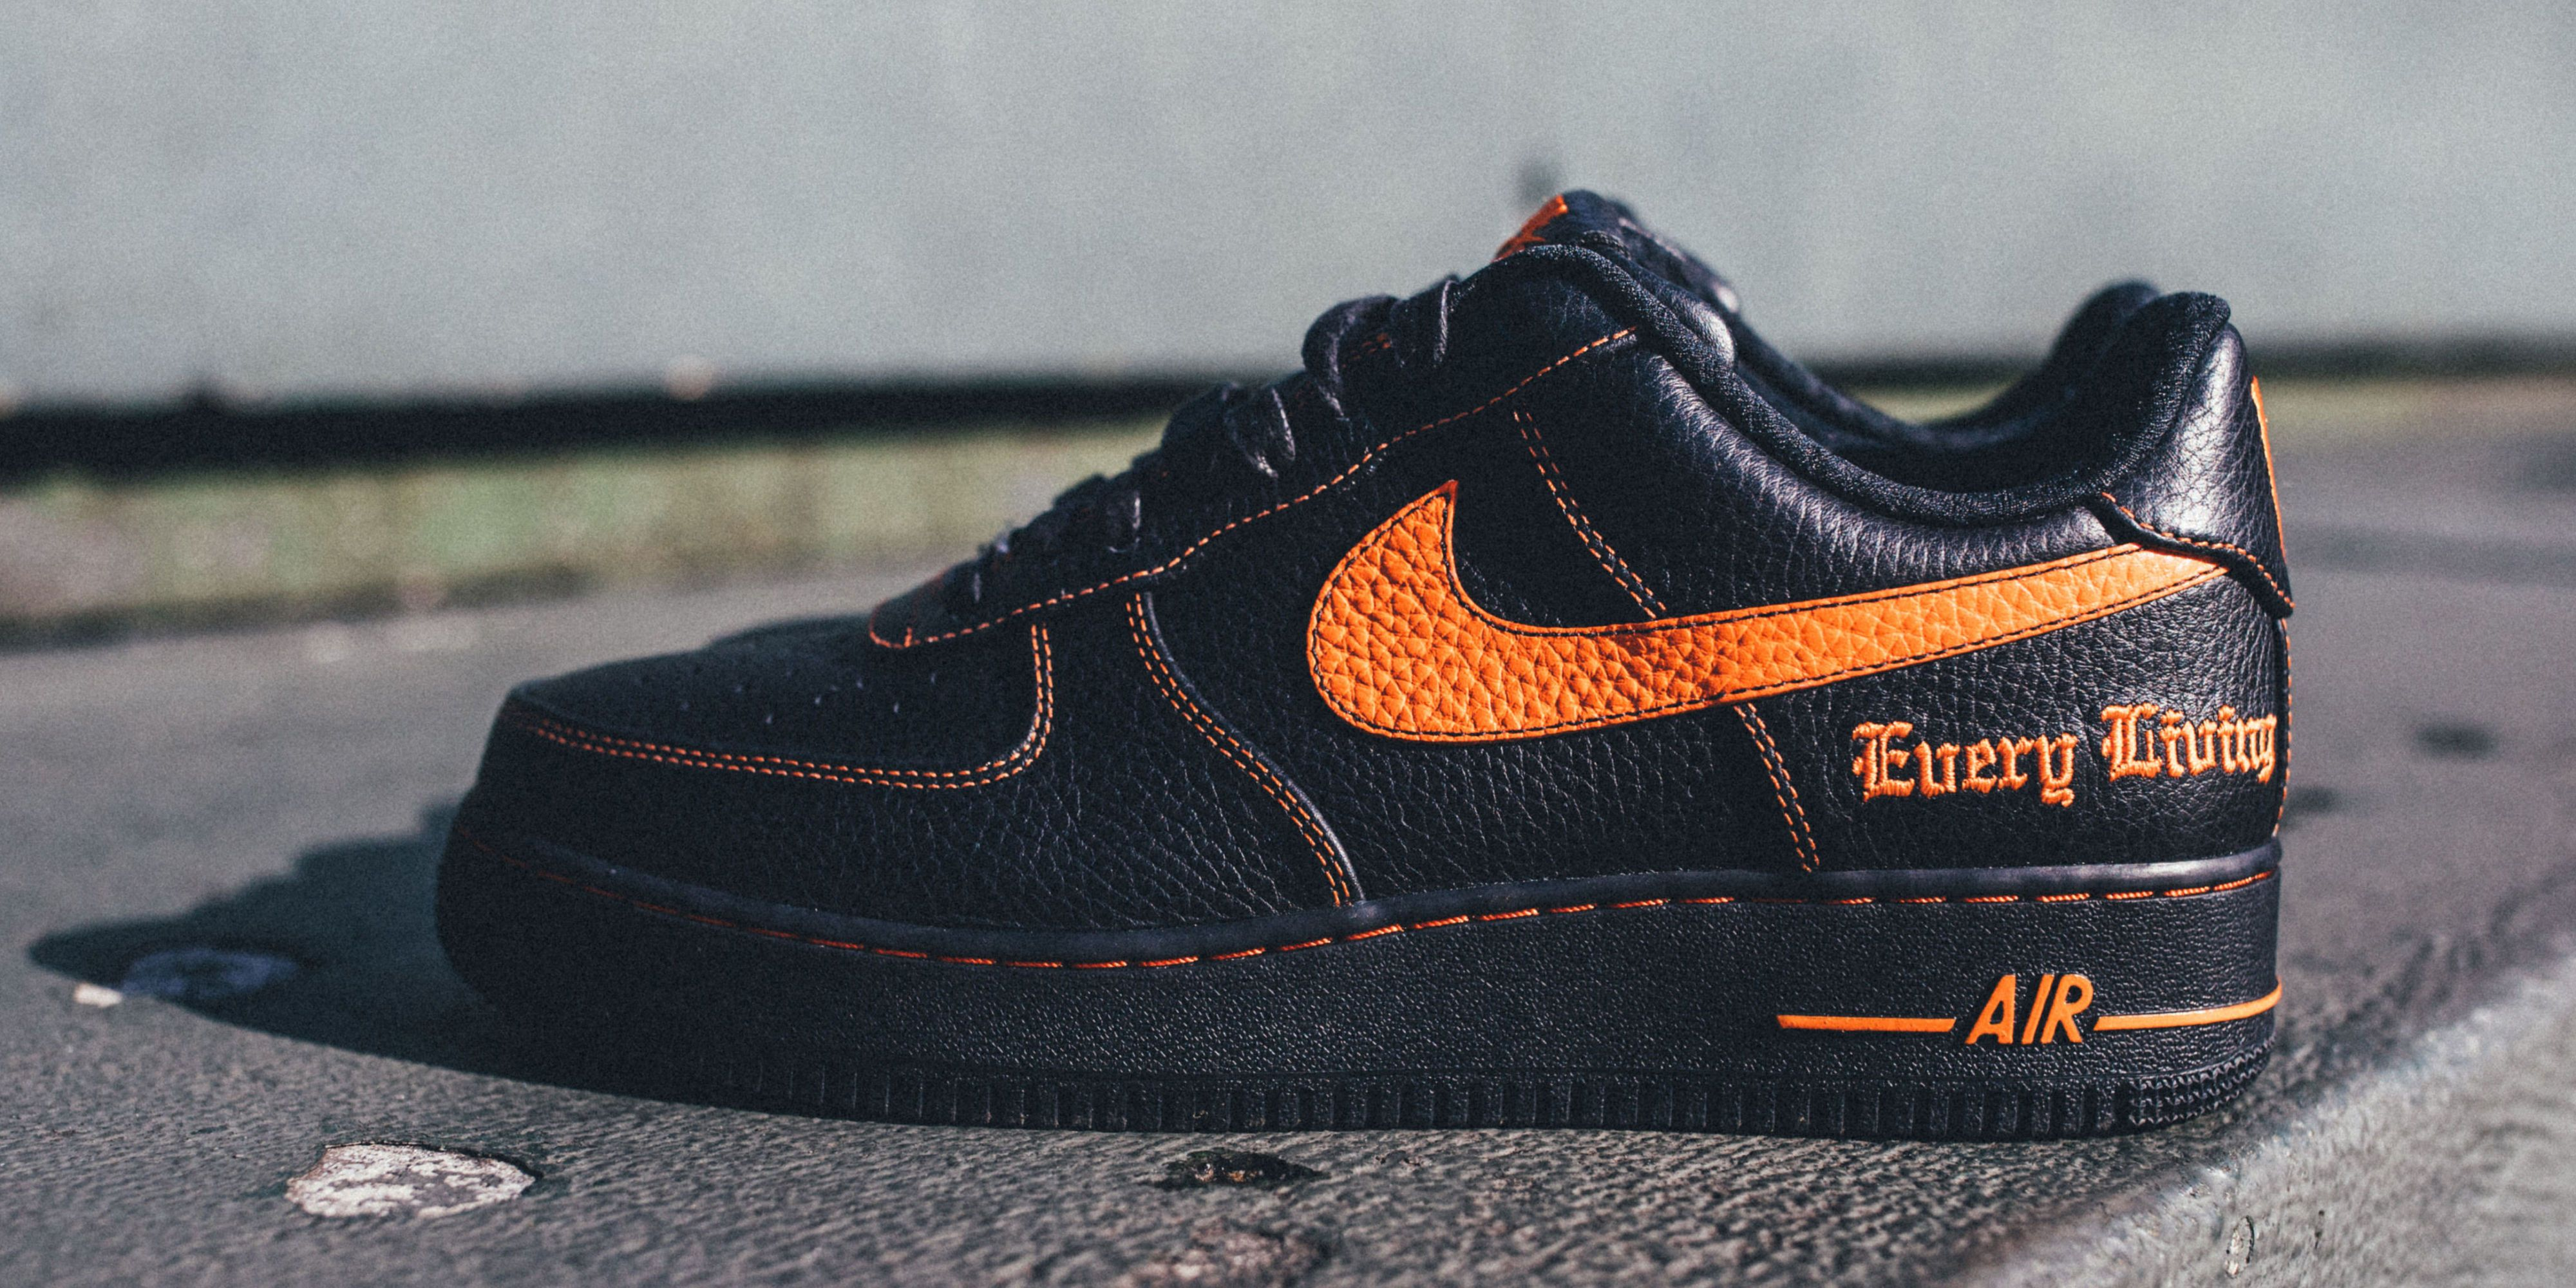 A$AP Bari on VLONE's New Air Force 1 Collab with Nike